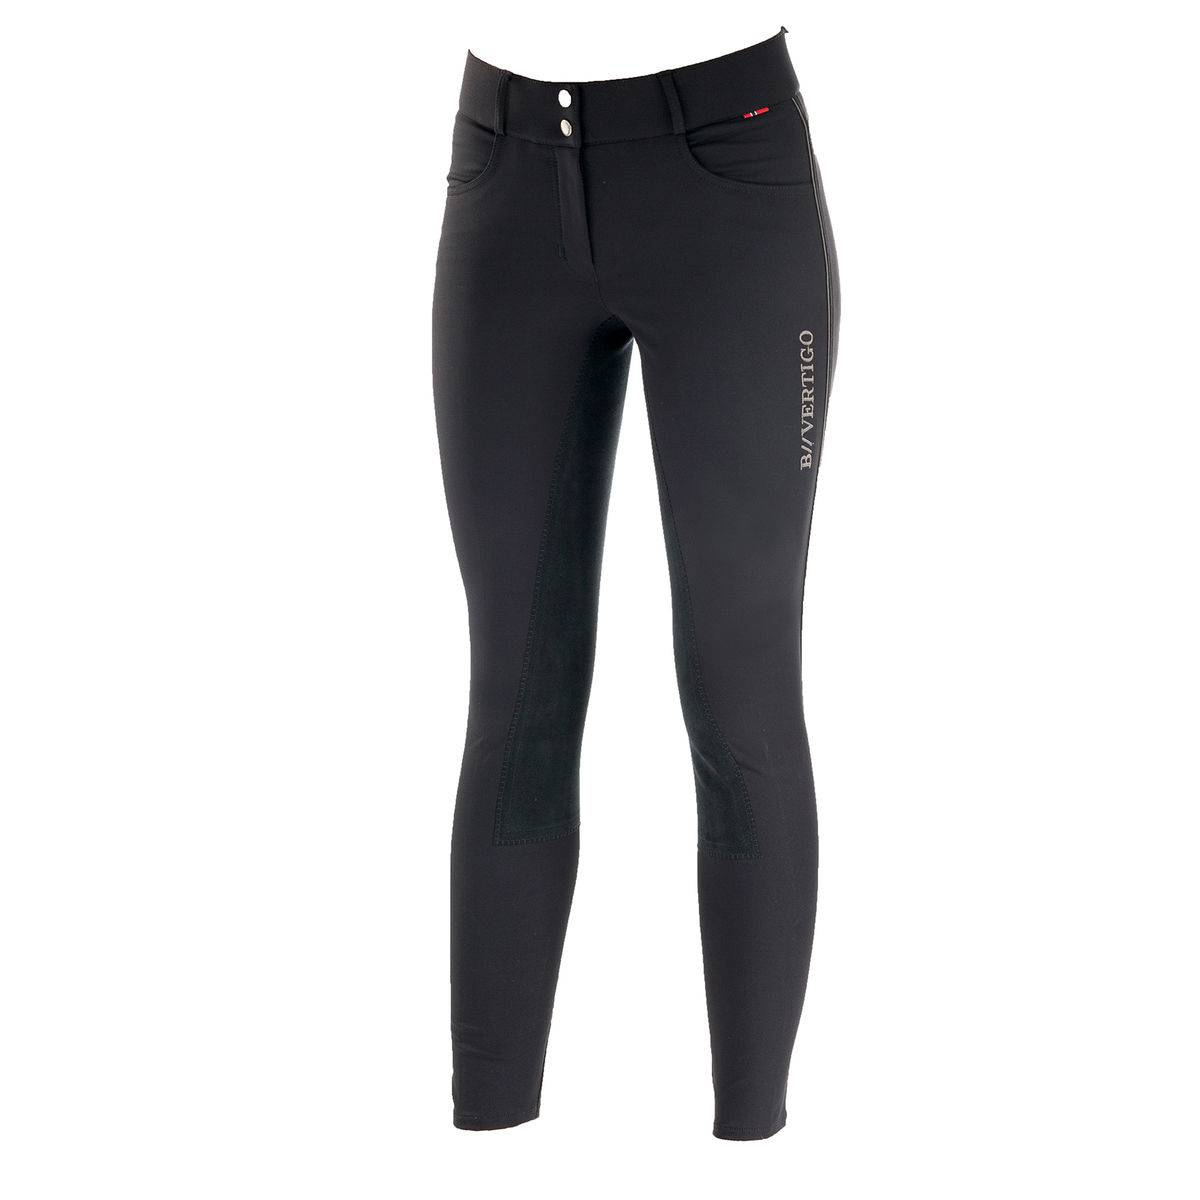 B Vertigo Kimberley Ladies Full Seat Breeches